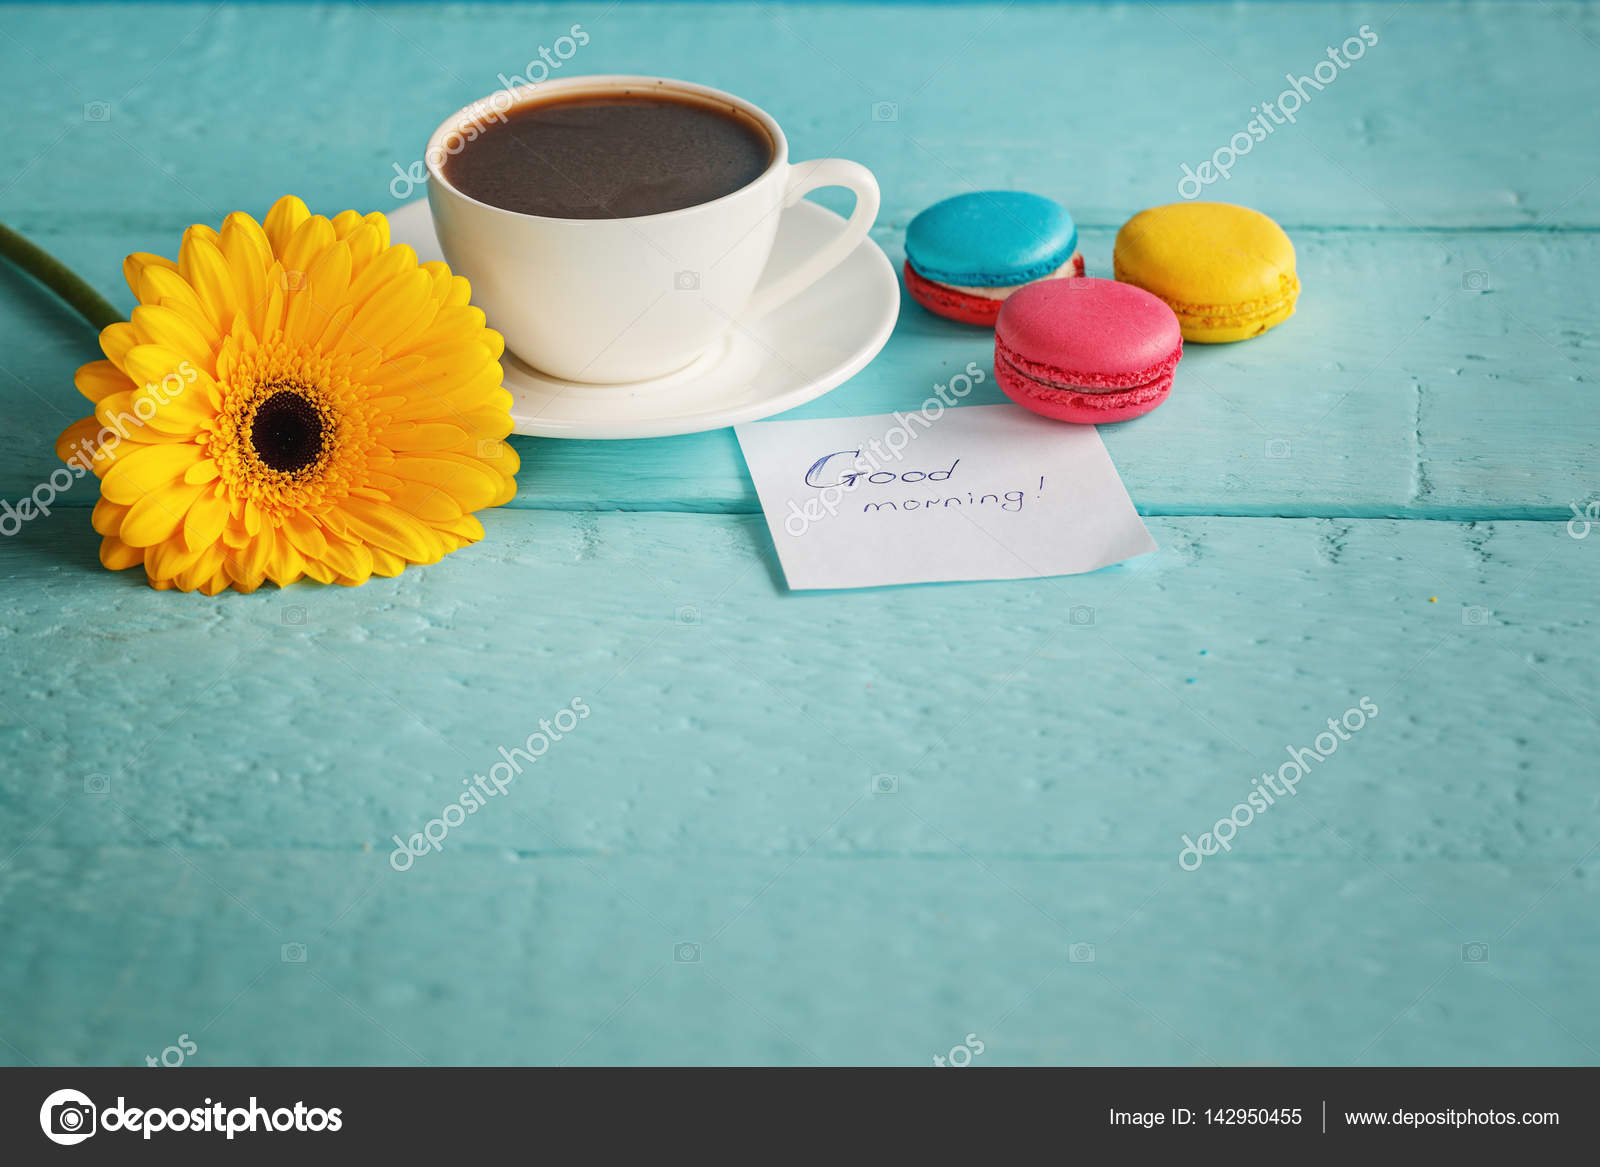 Cup Of Coffee Or Tea With Yellow Flower And Macaroons On Blue